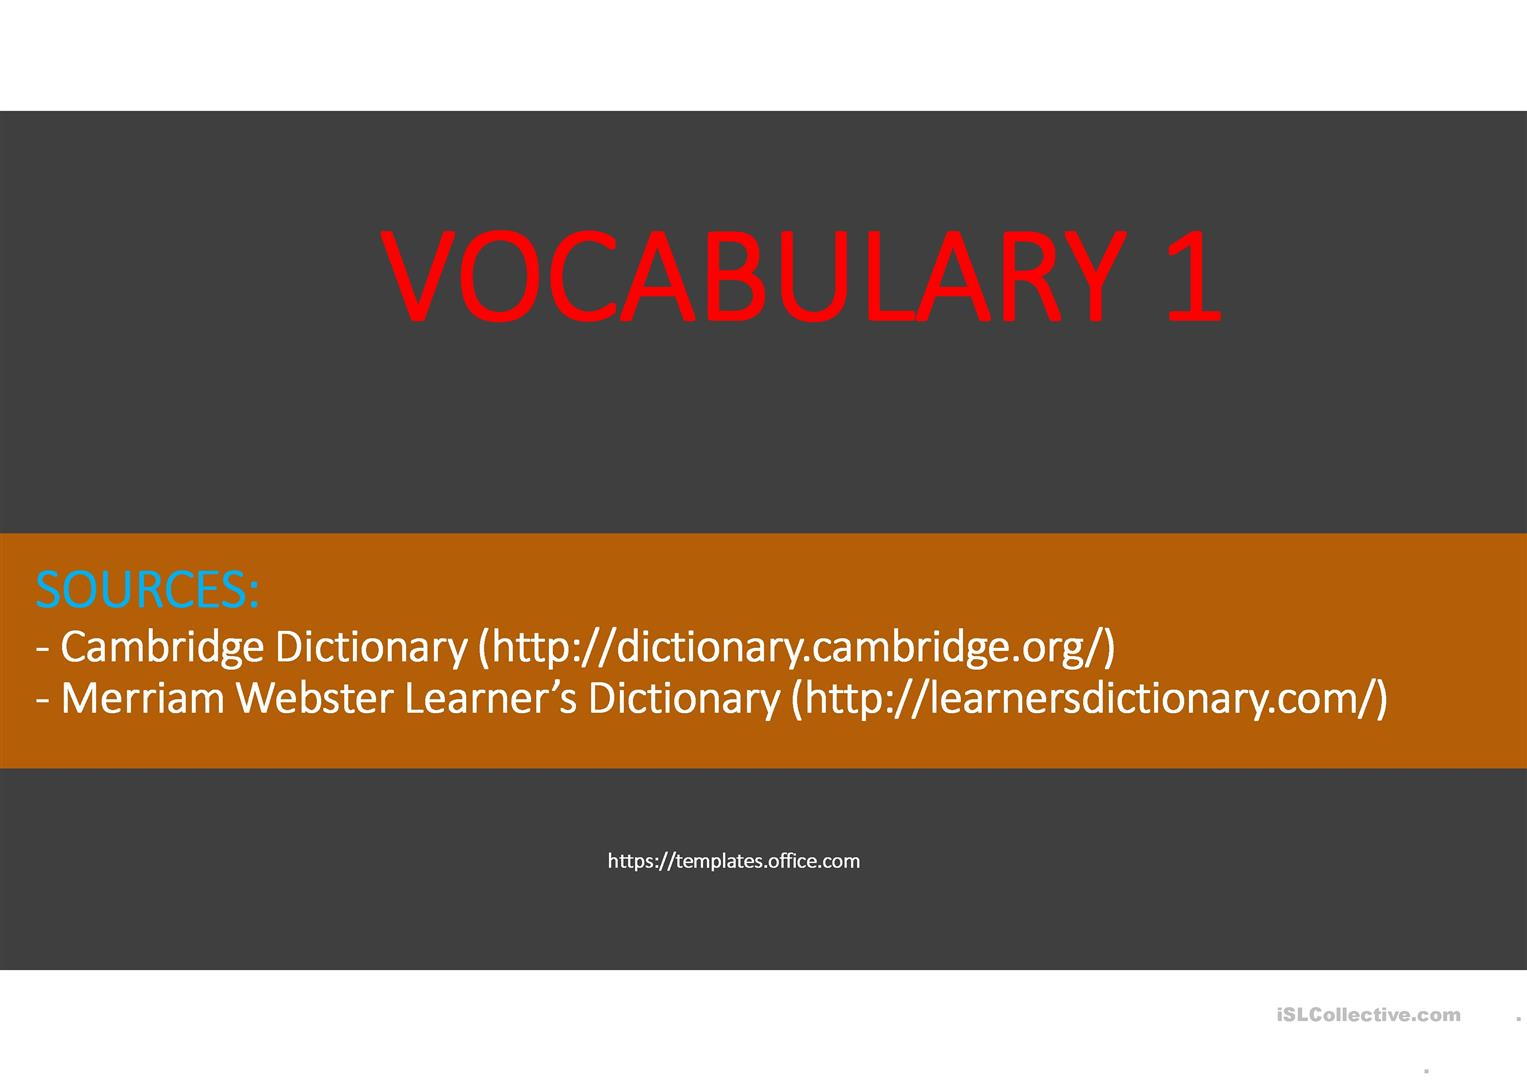 Vocabulary 1